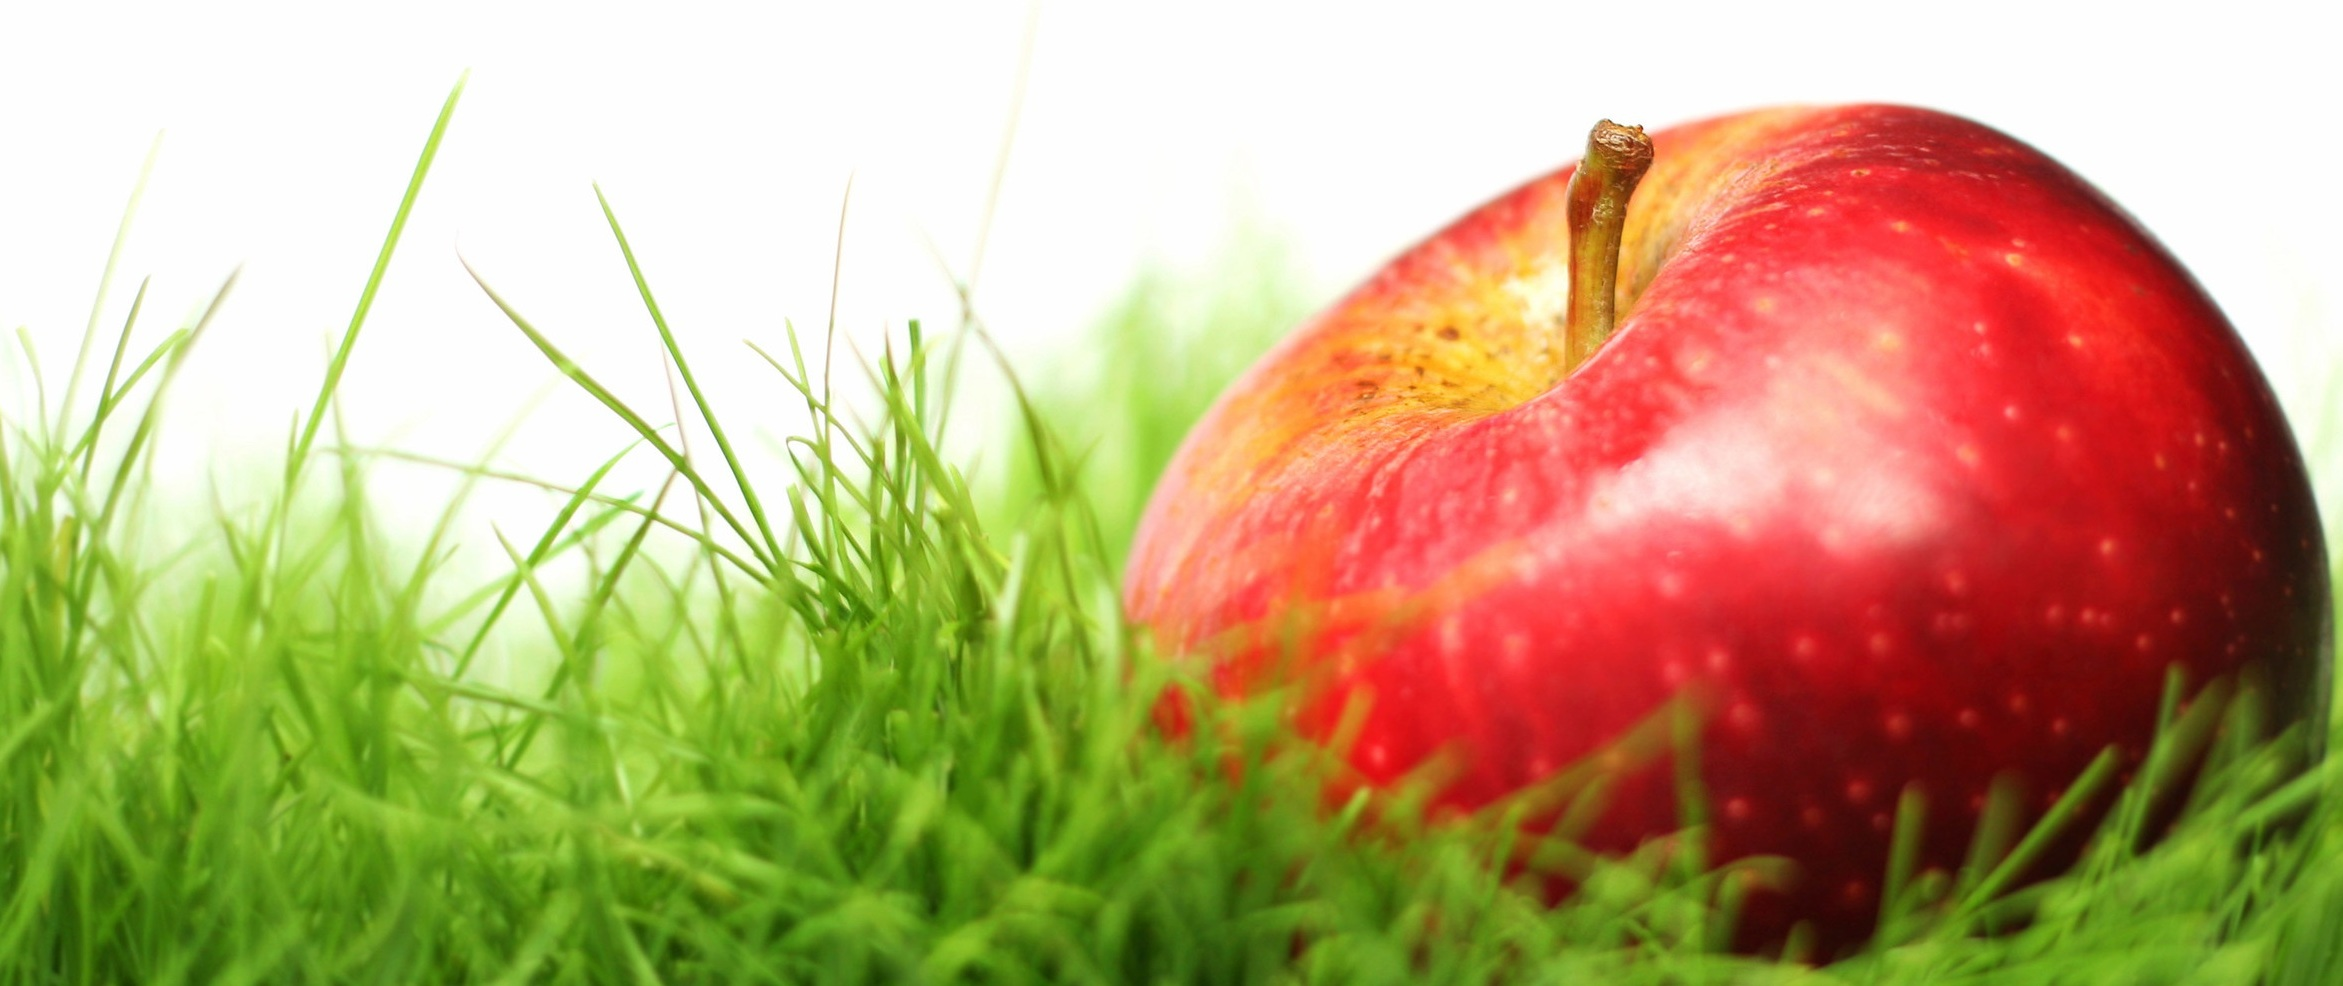 apple-in-grass.jpg